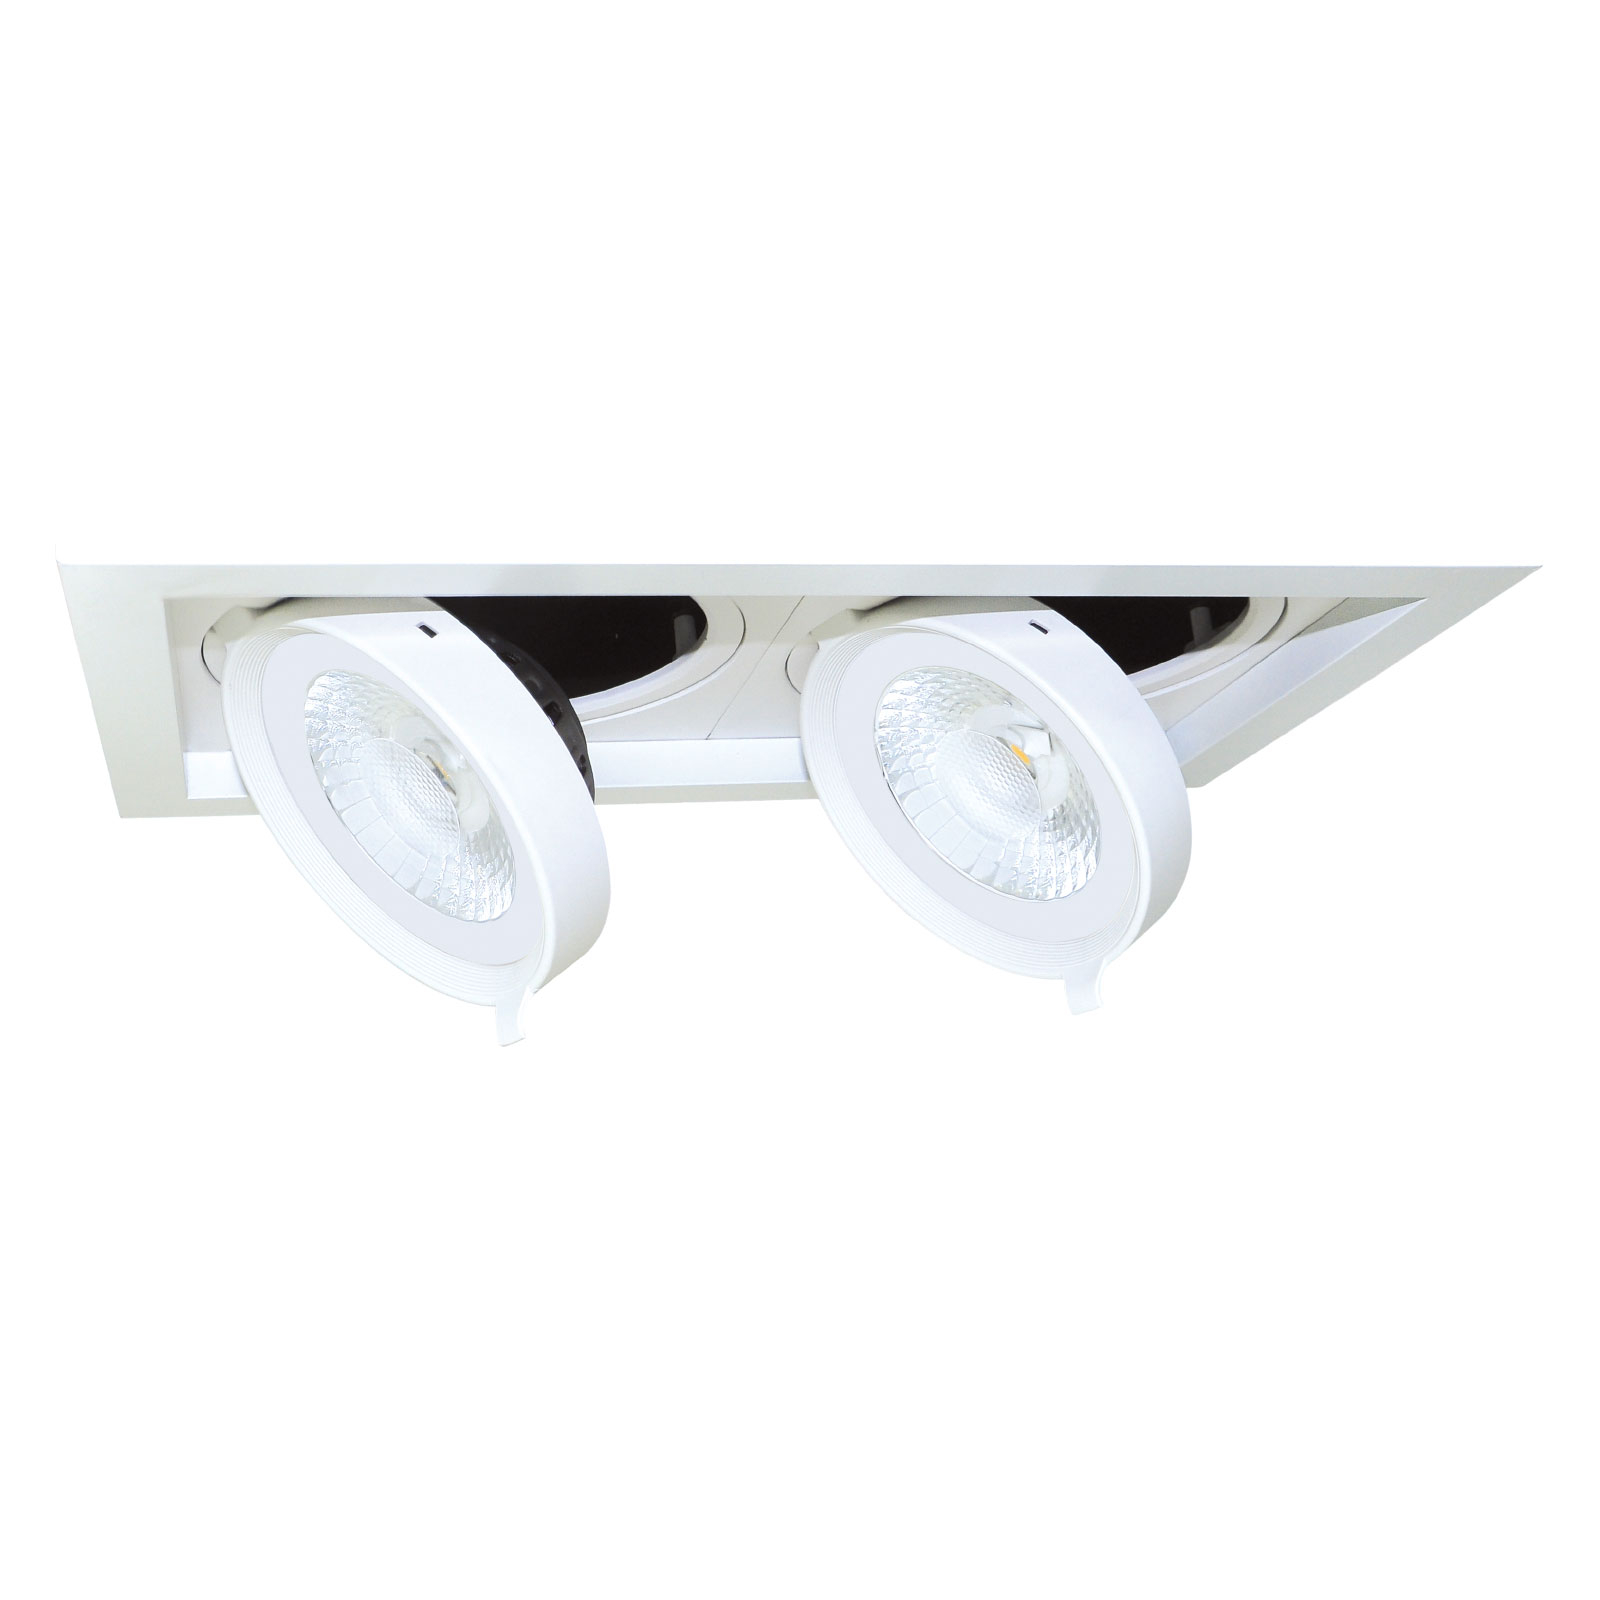 LED-downlight Quado1, 2 lyskilder, dimbar